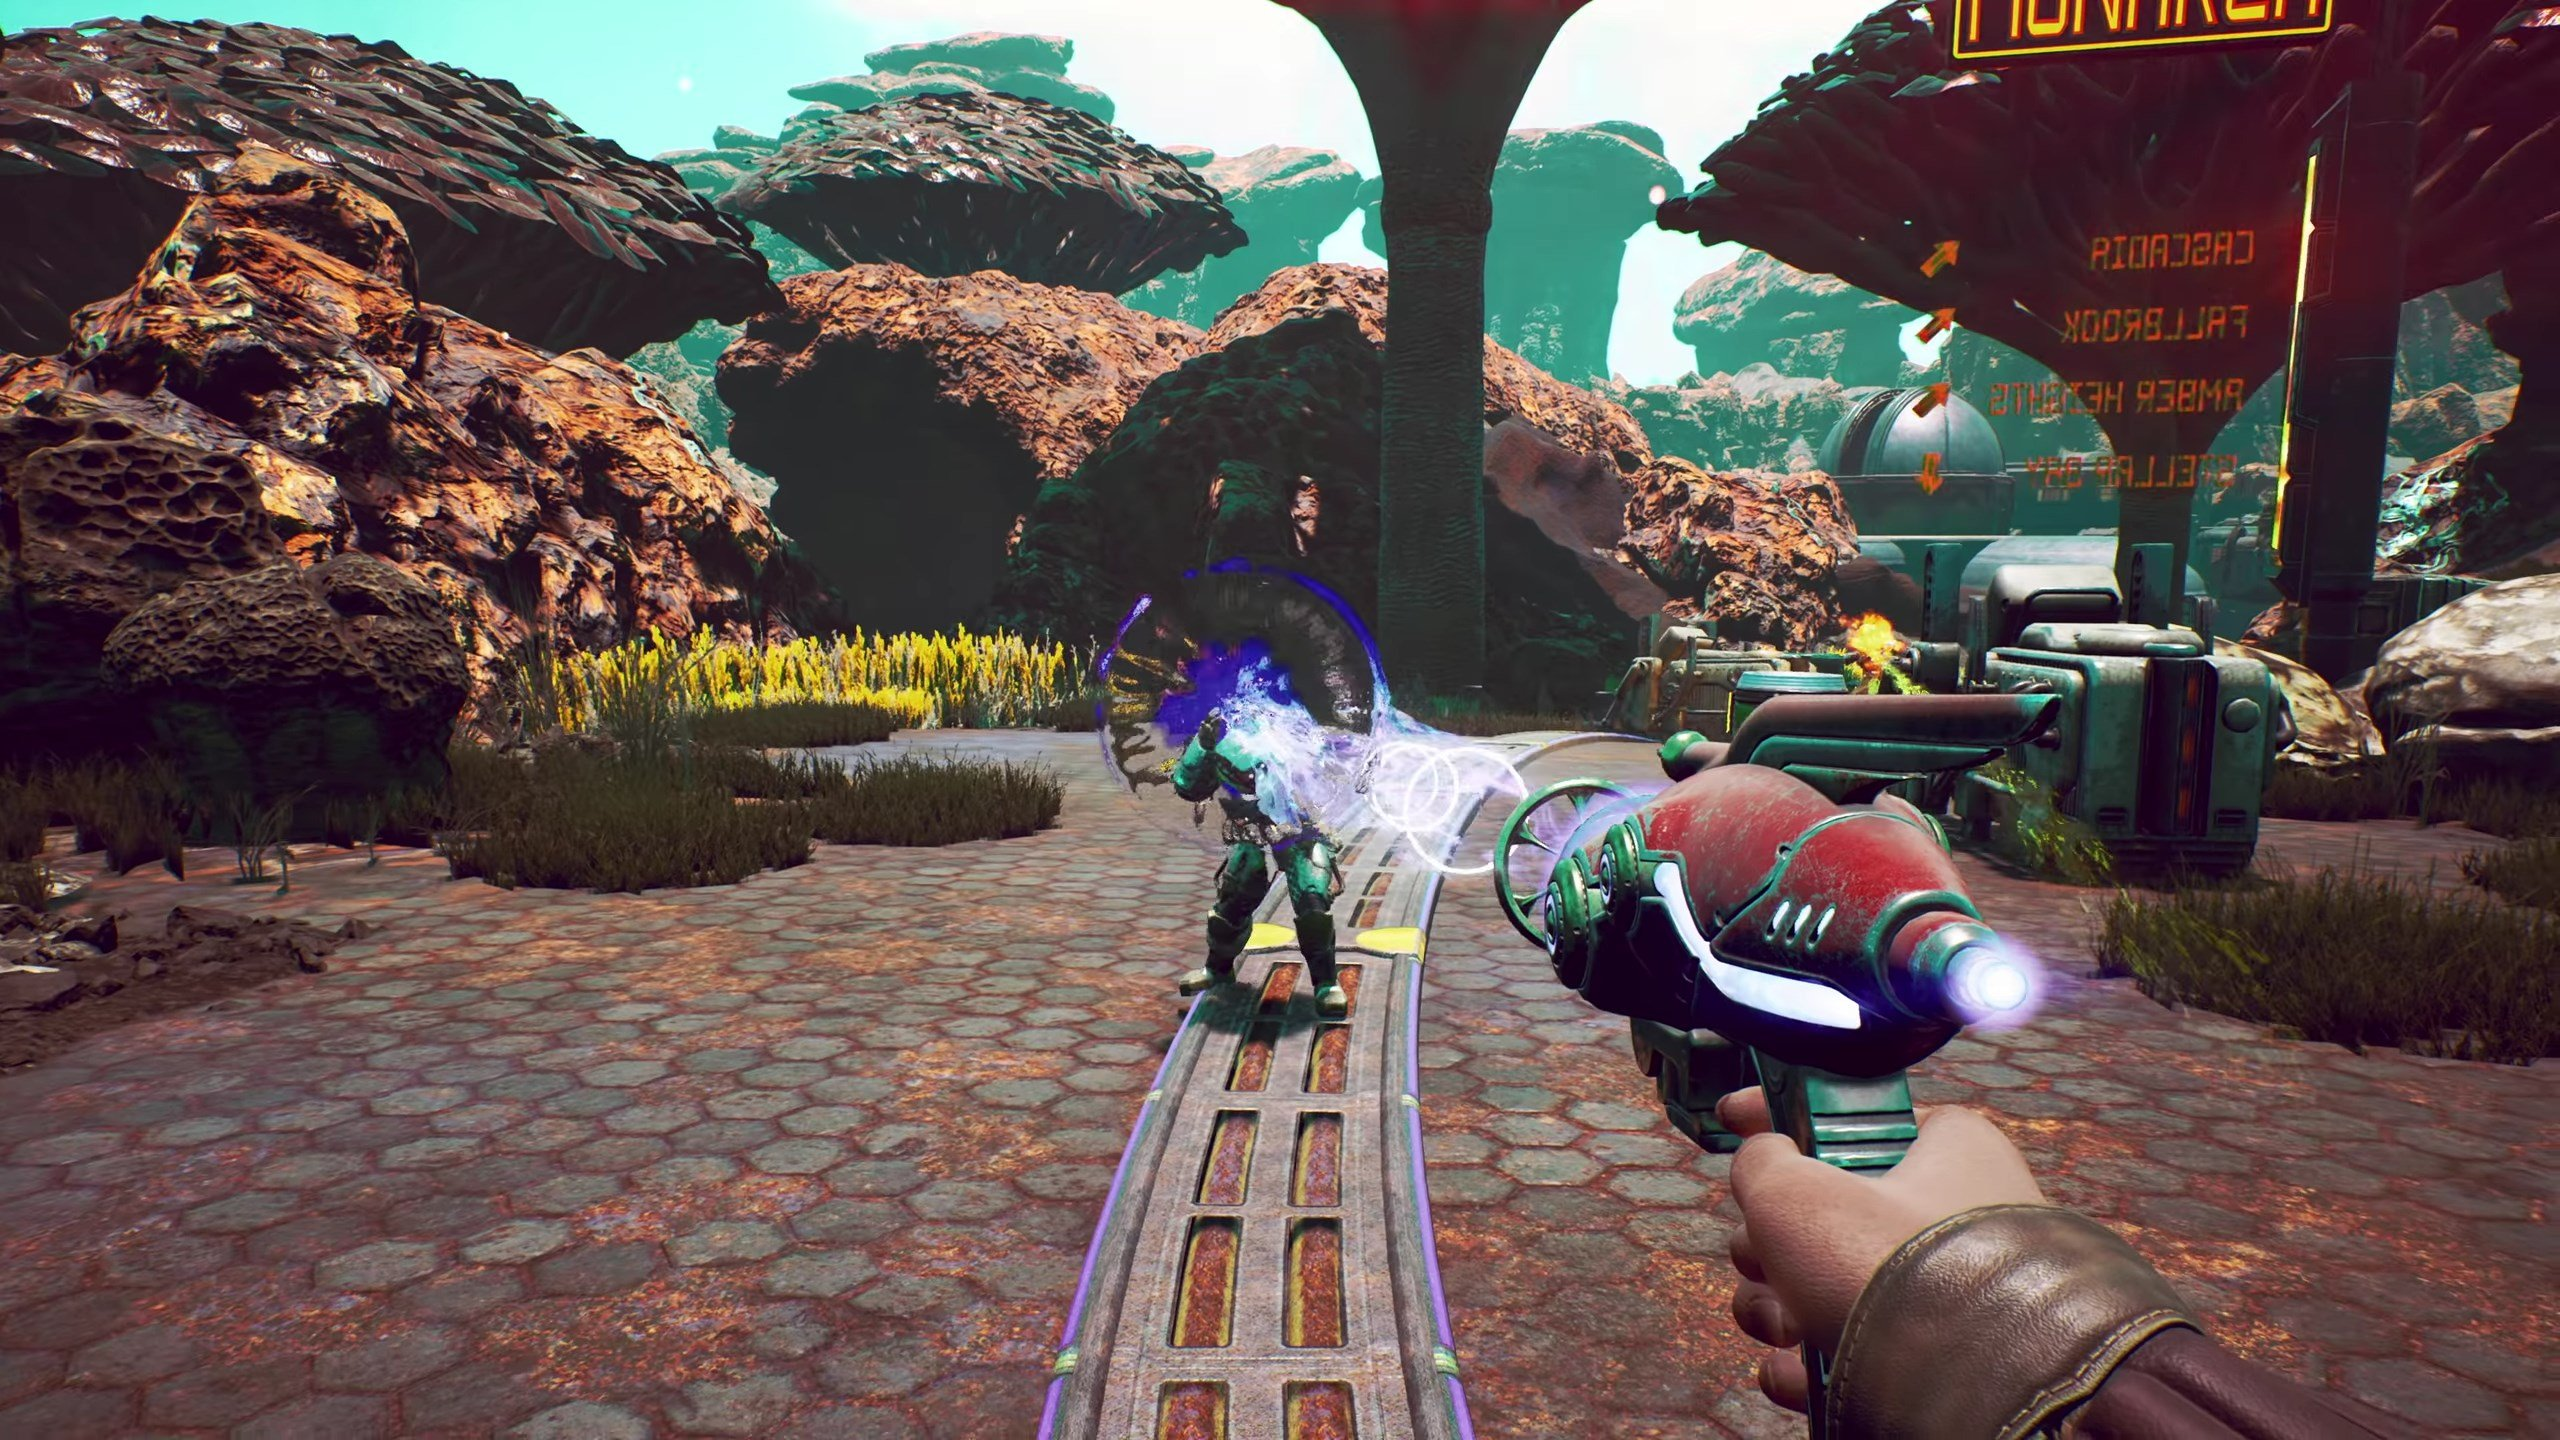 The Outer Worlds will have enhancements on the Xbox One X, but not the PS4 Pro